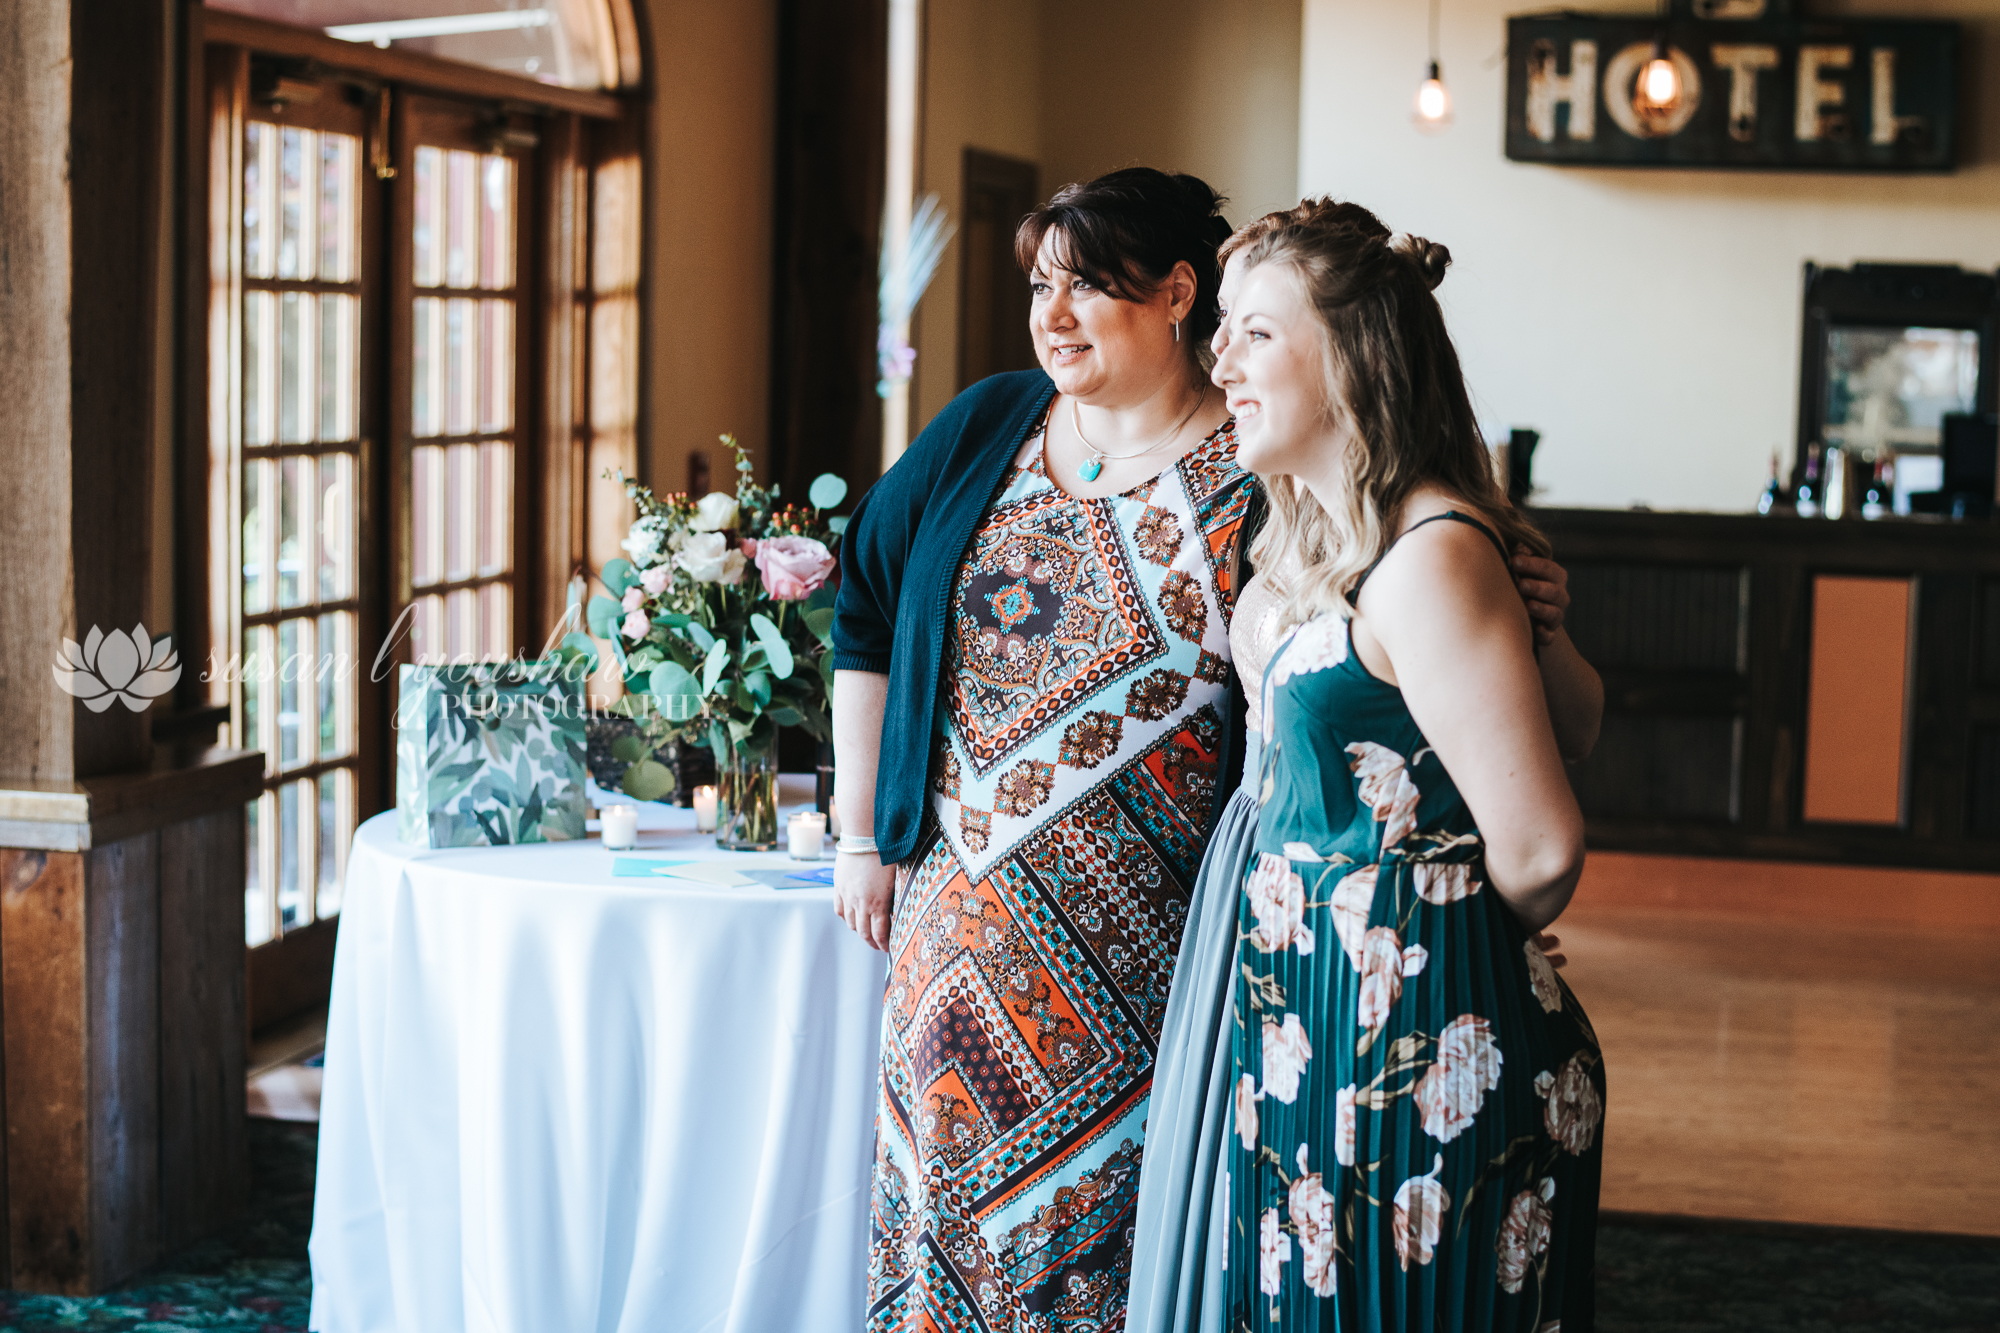 Chynna and John Wedding 05-18-2019 SLY Photography-118.jpg